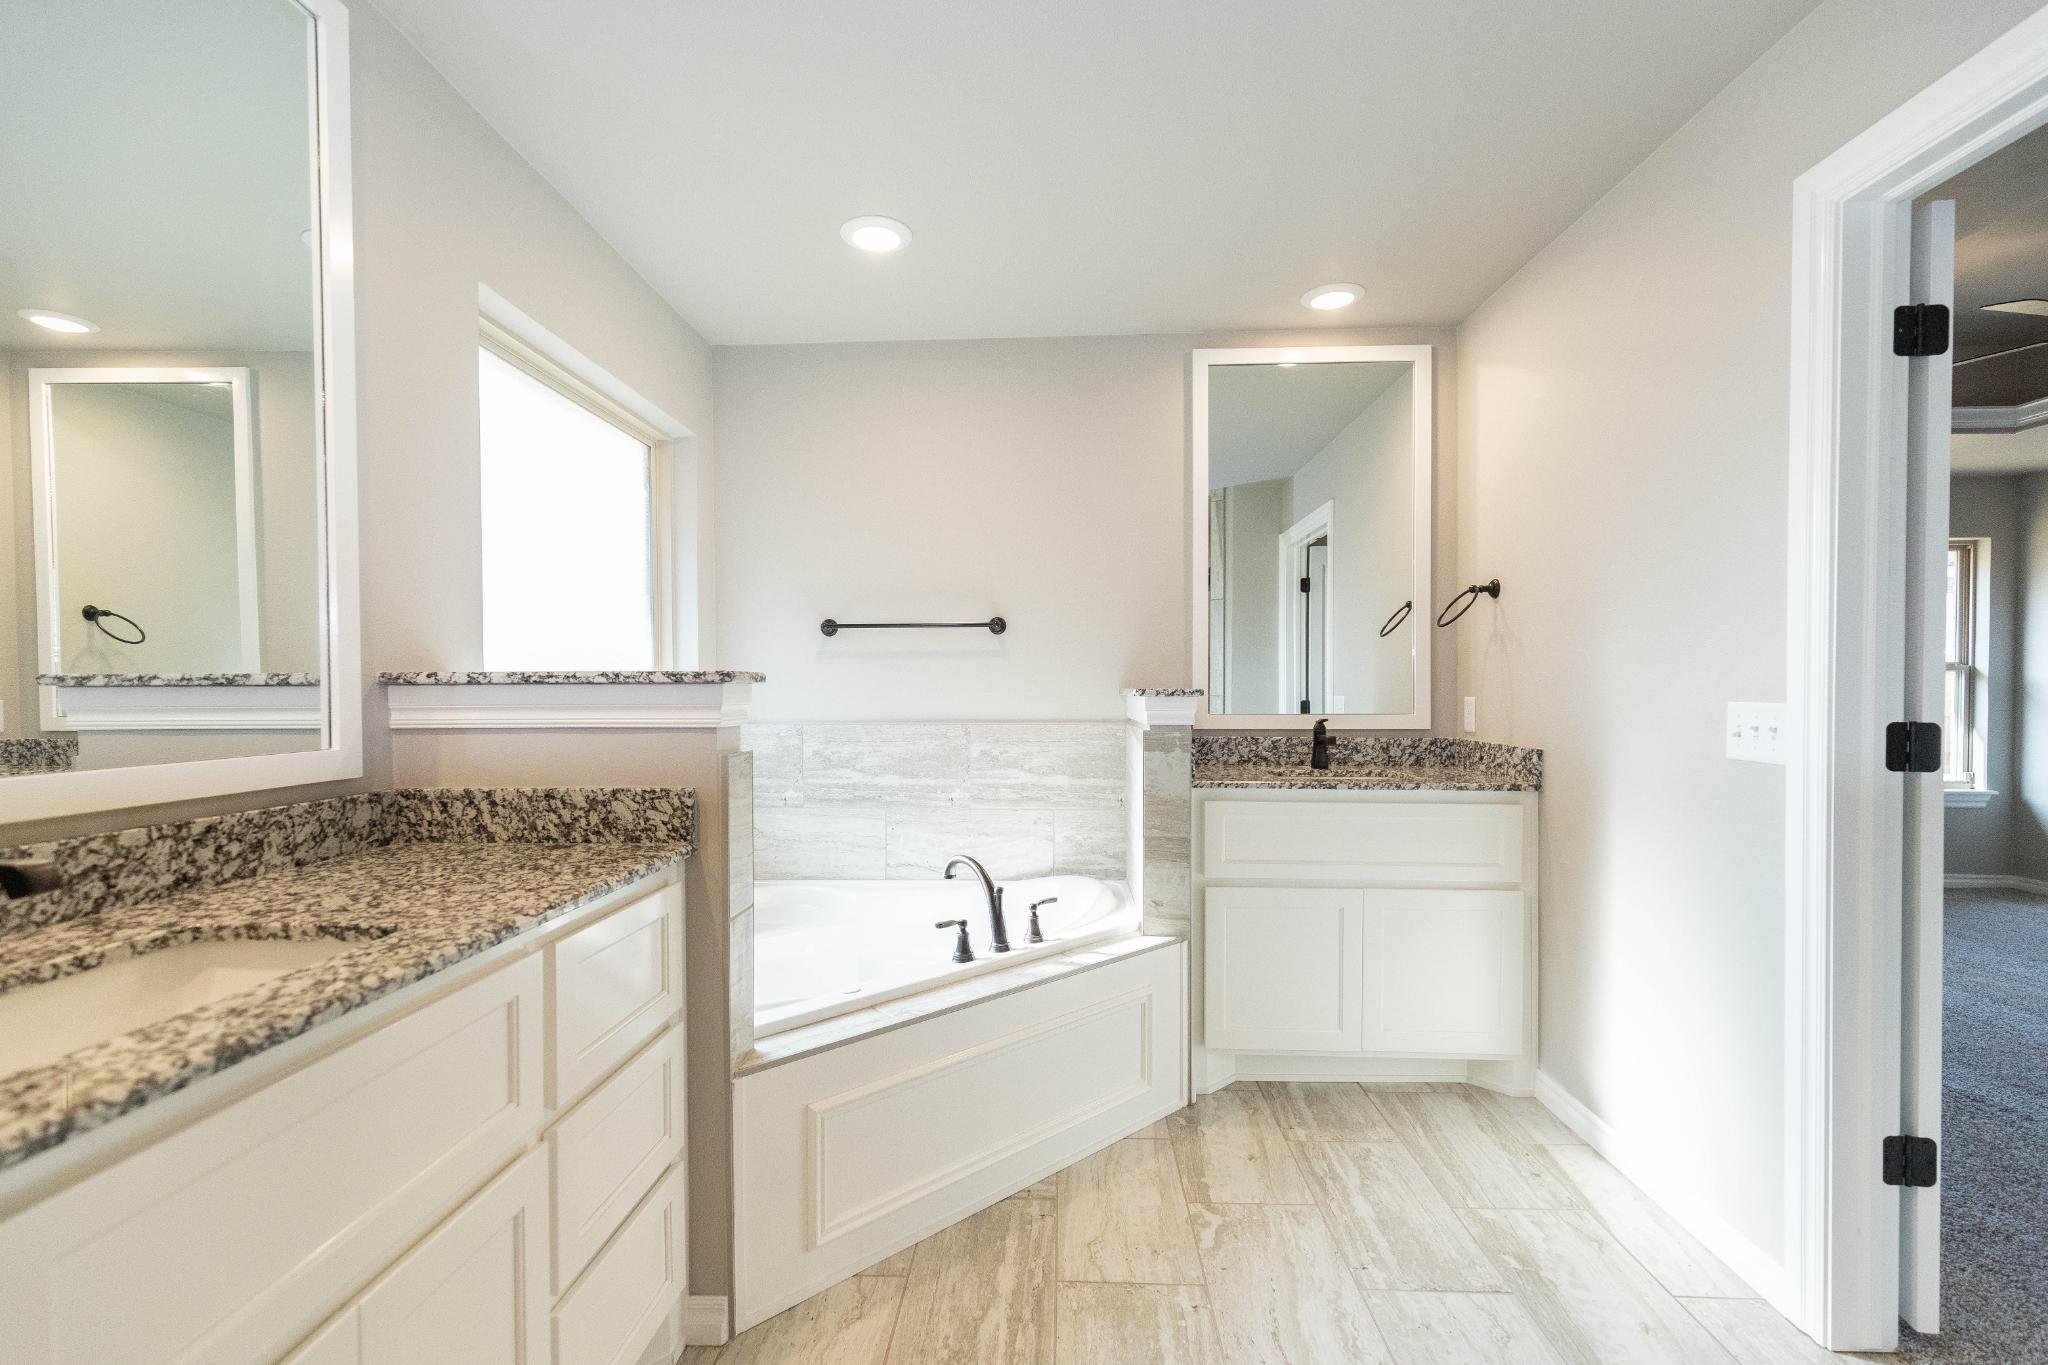 Bathroom featured in the Shiloh Half Bath By Homes By Taber in Oklahoma City, OK